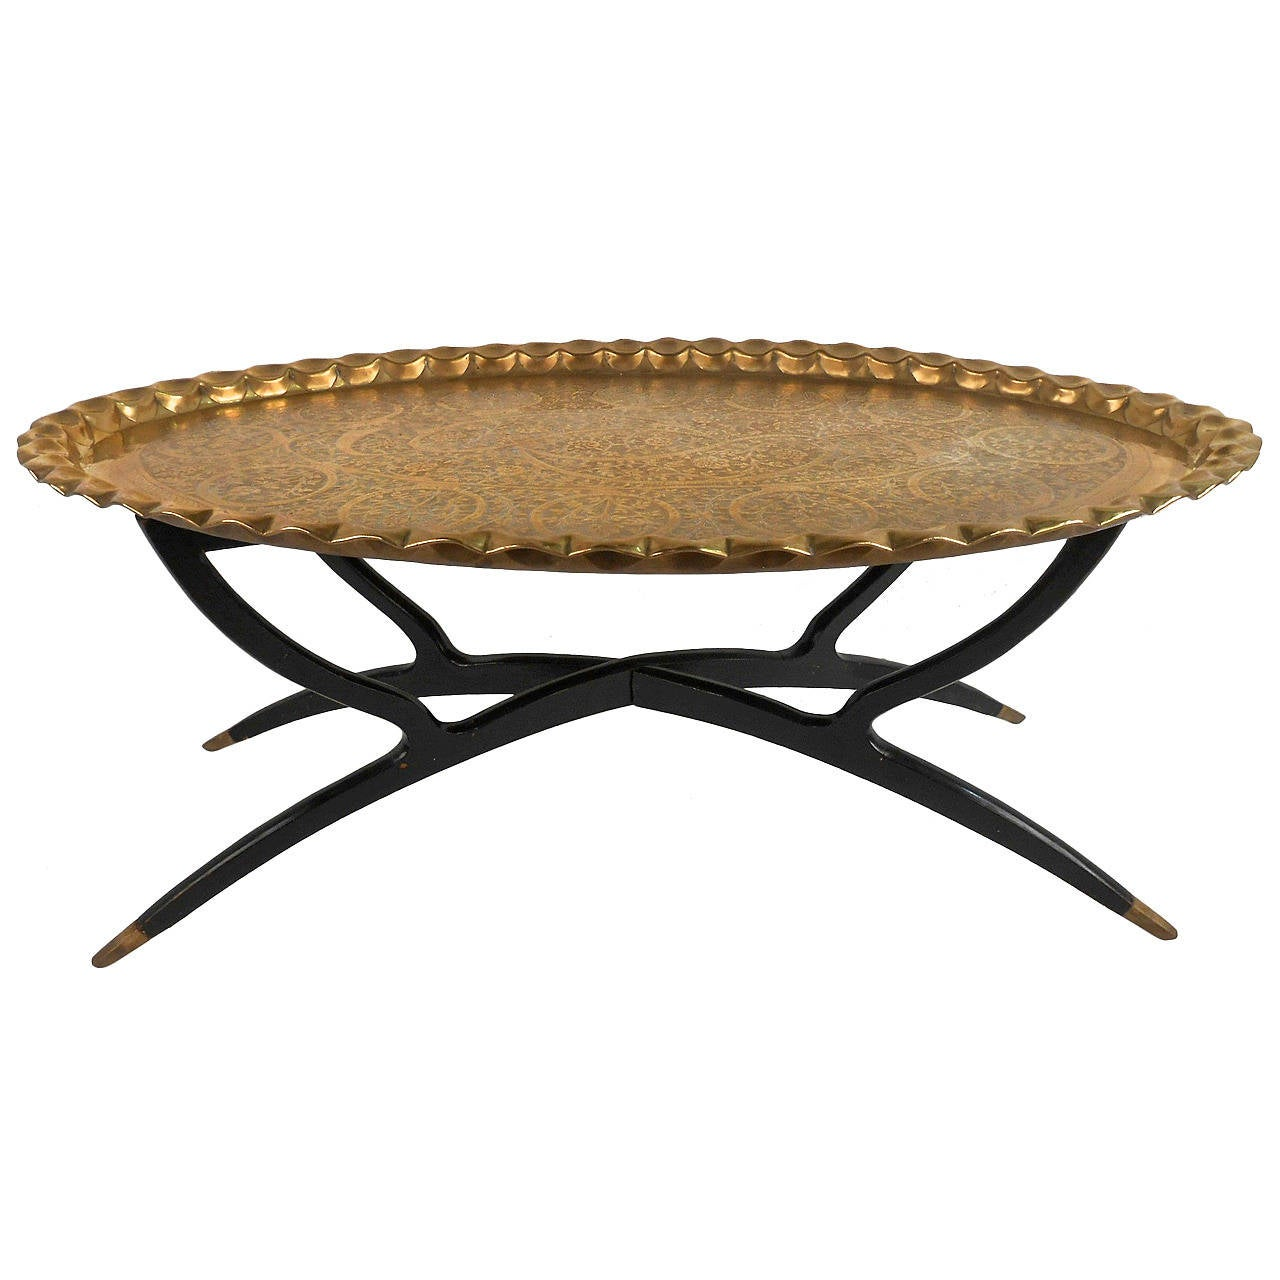 Mid century modern moroccan style tray coffee table at 1stdibs for Trays on coffee tables